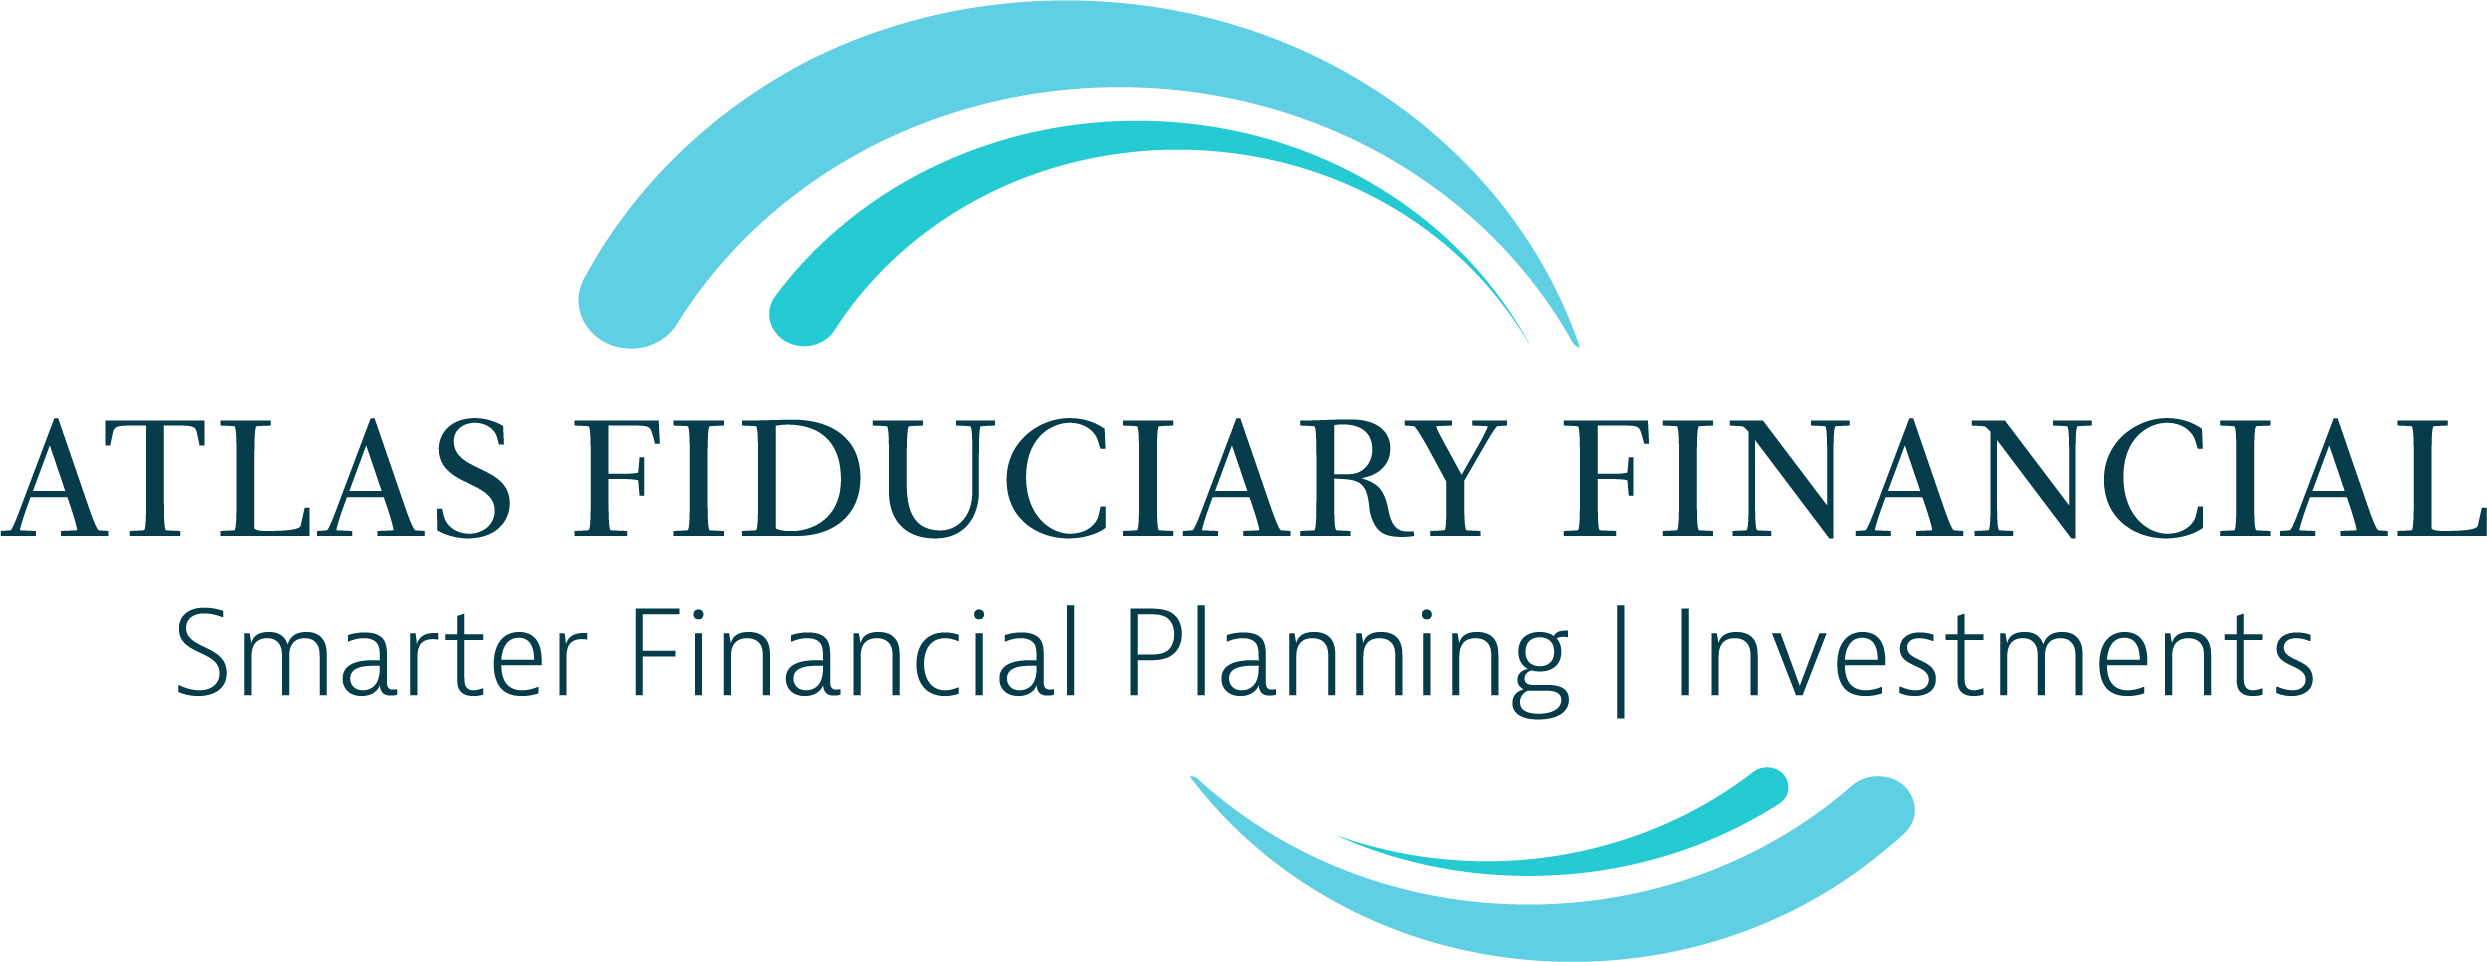 Atlas Fiduciary Financial logo Sarasota, FL Atlas Fiduciary Financial